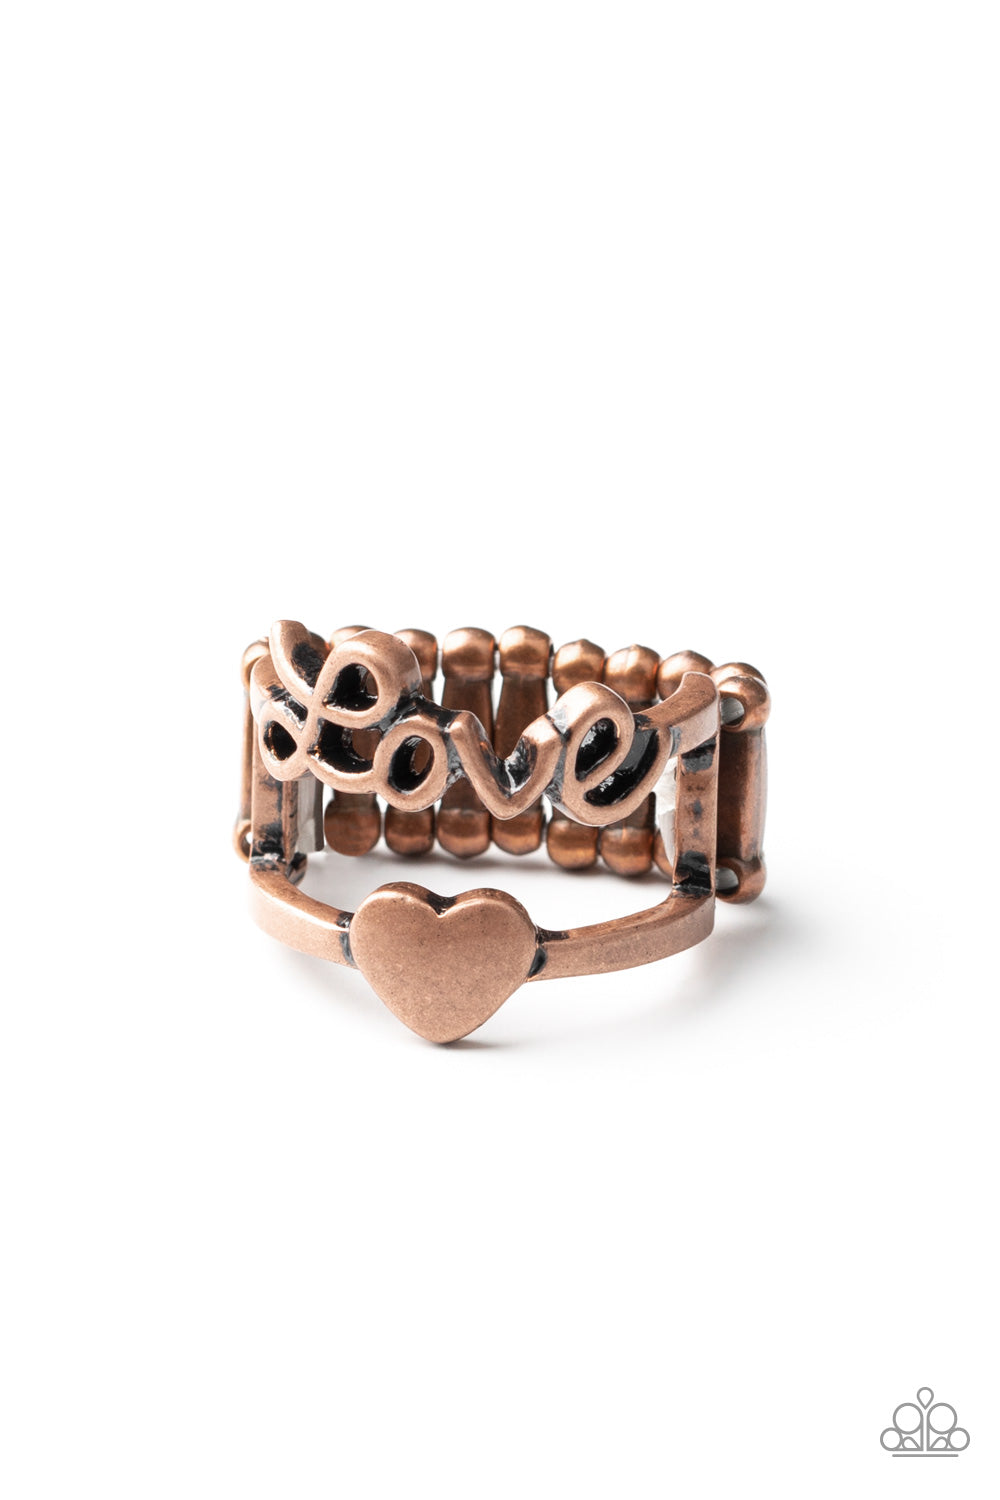 five-dollar-jewelry-heartstring-harmony-copper-ring-paparazzi-accessories